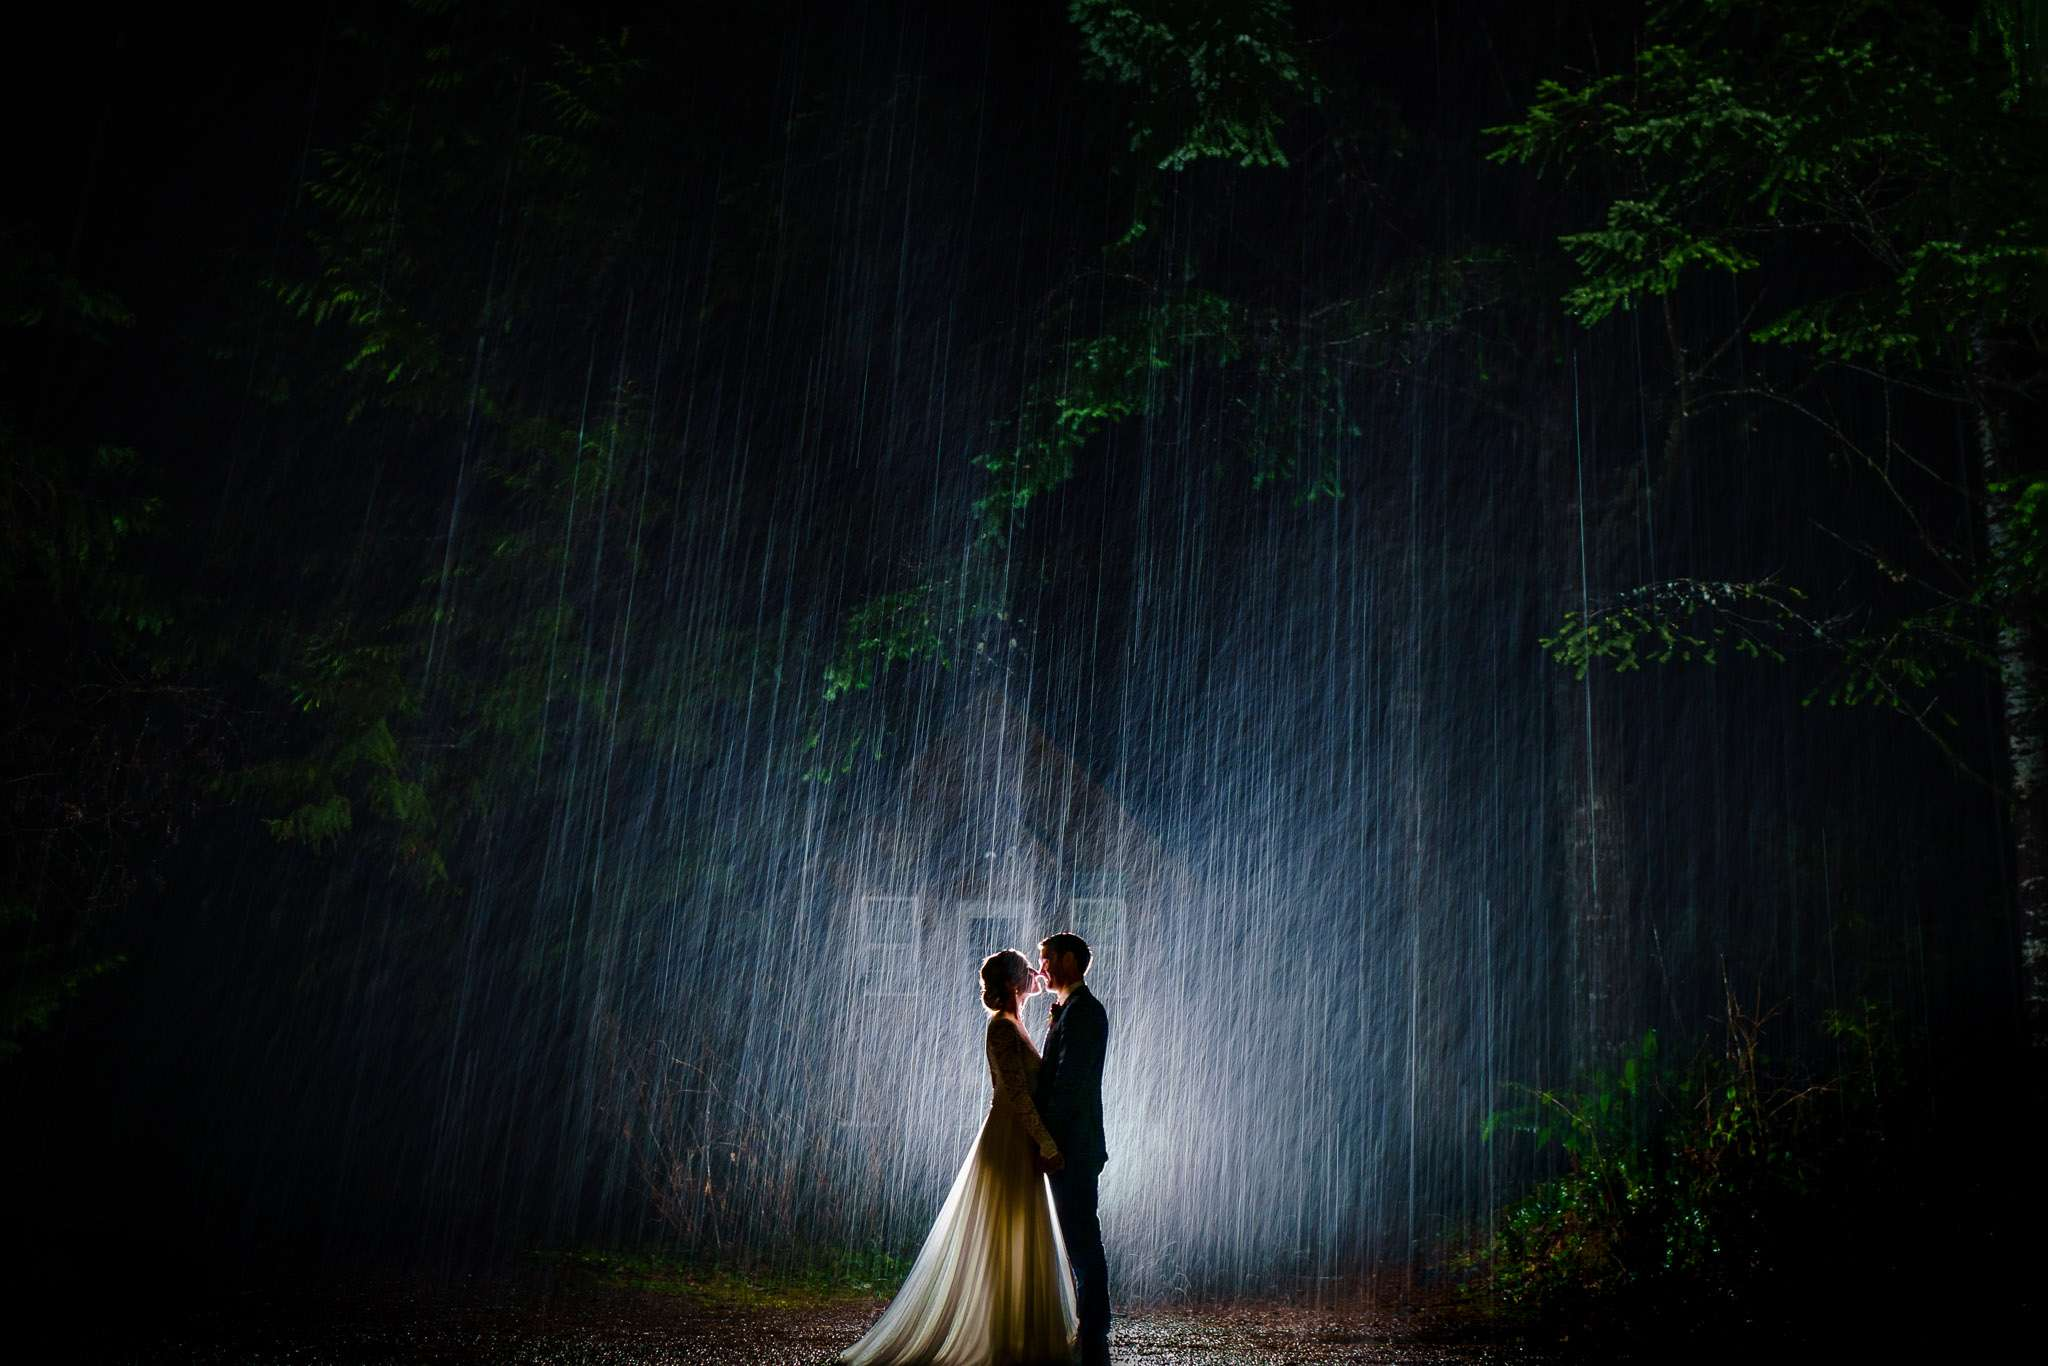 Silhouette of a bride and groom kissing in the rain